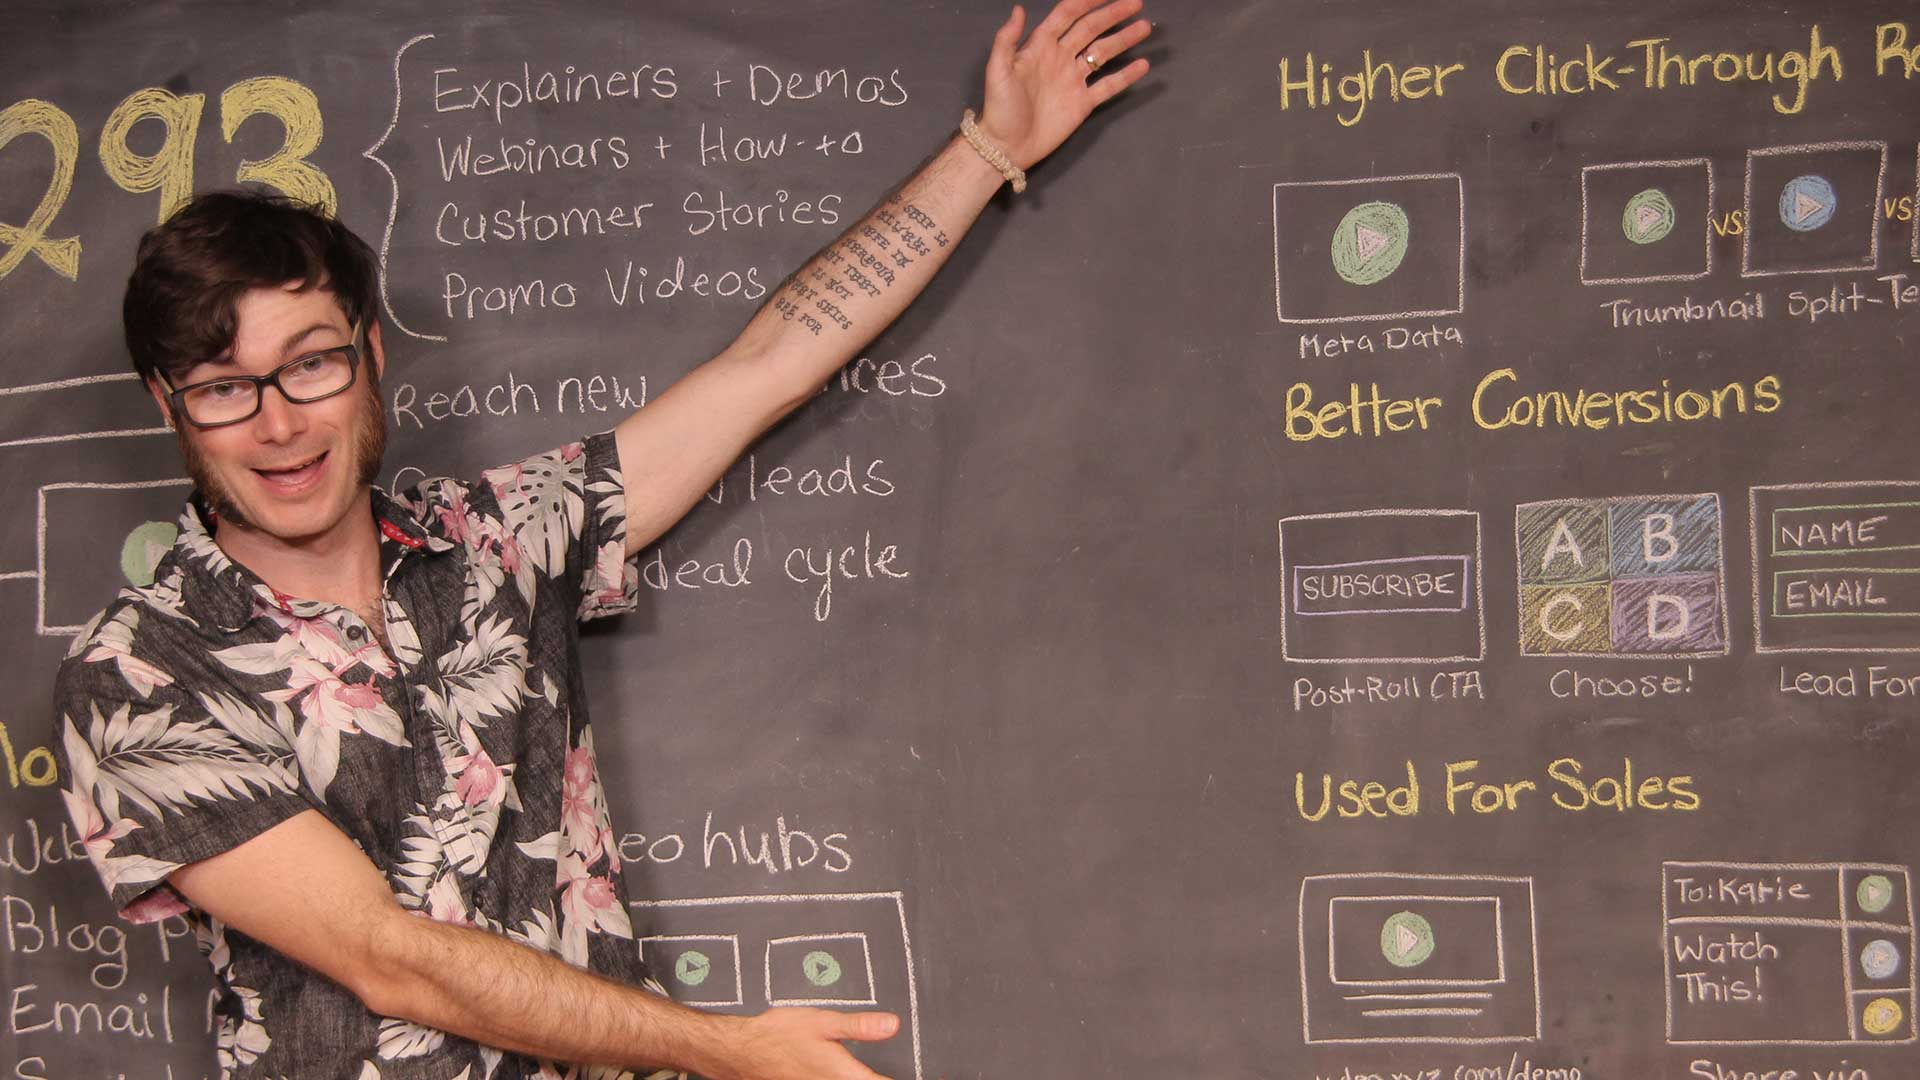 Chalk Talks: Generating More Value from Existing Video Content - Blog